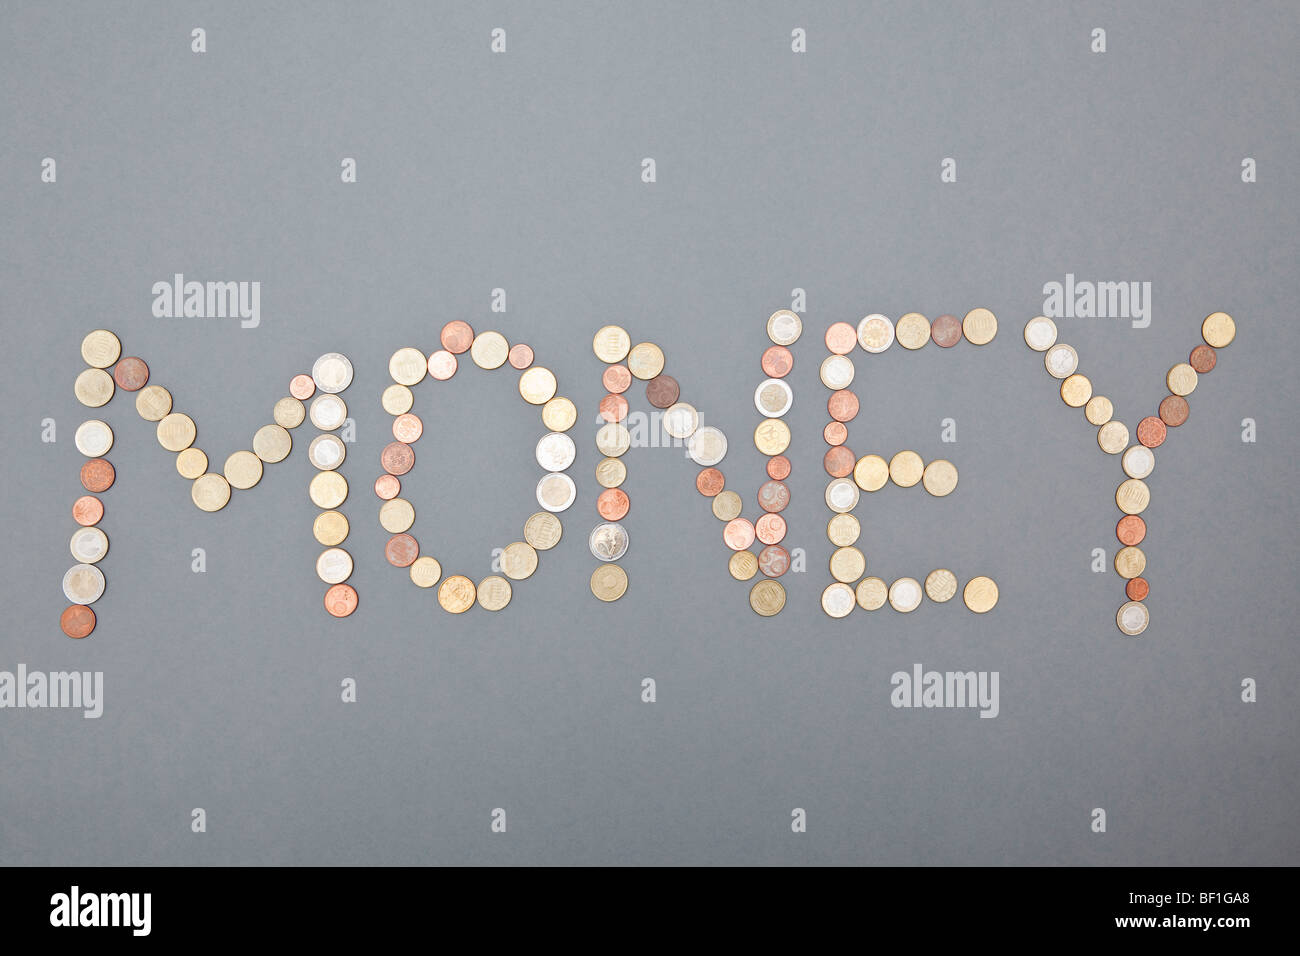 Coins spelling out MONEY - Stock Image